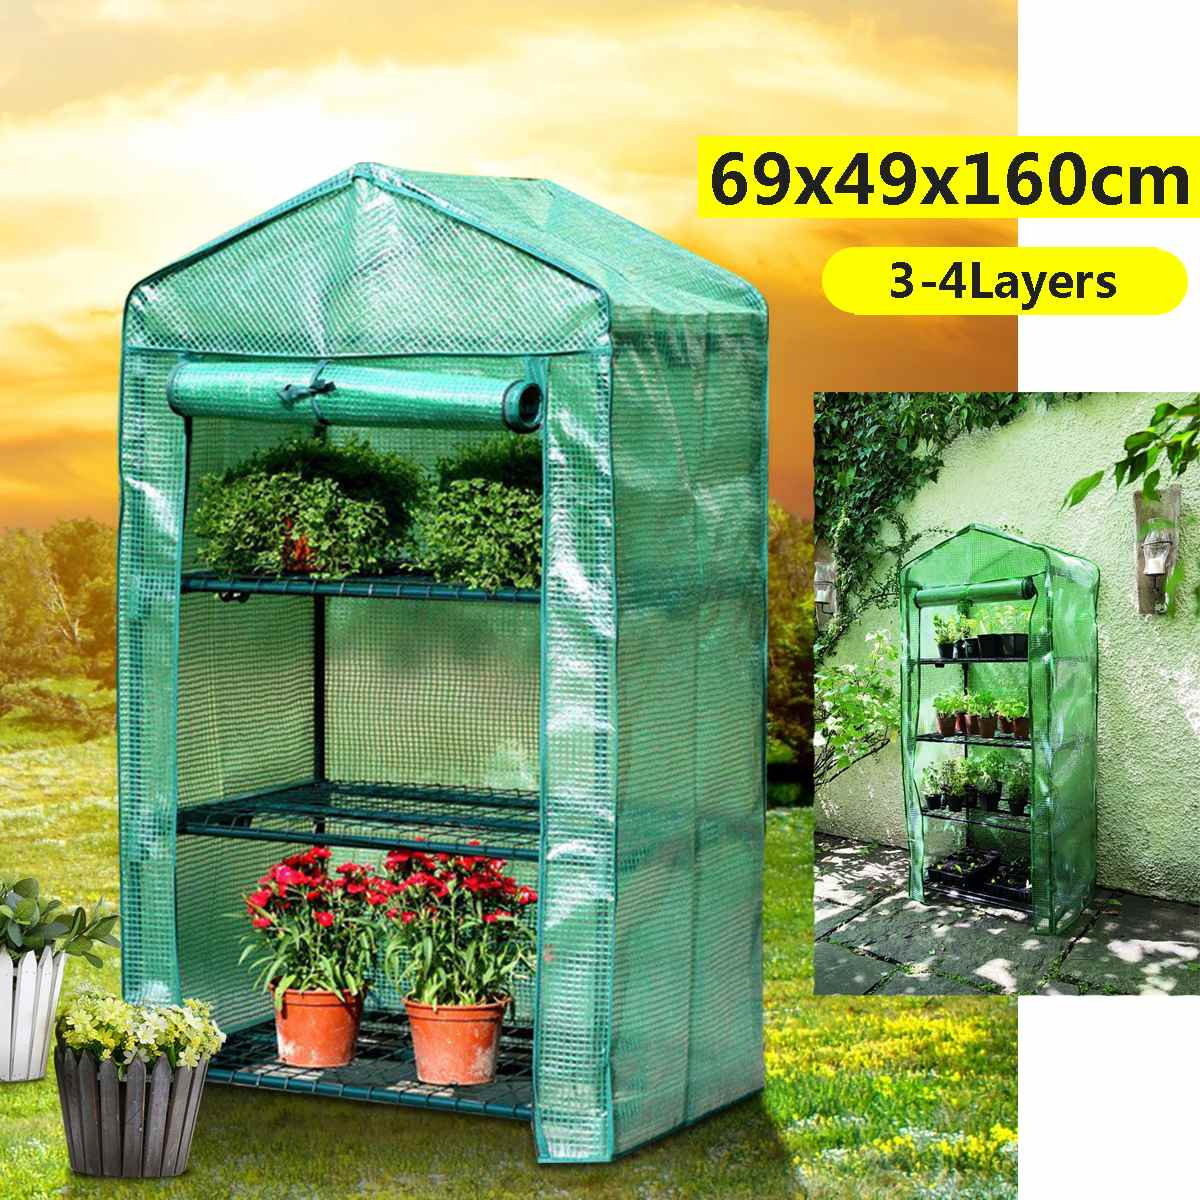 2019 Fashion Apex-roof 5-tier Garden Greenhouse Hot Plant House Shelf Shed Clear Pvc Cover Keep Warm Good Breathability 69x49x187cm Removable Garden Buildings